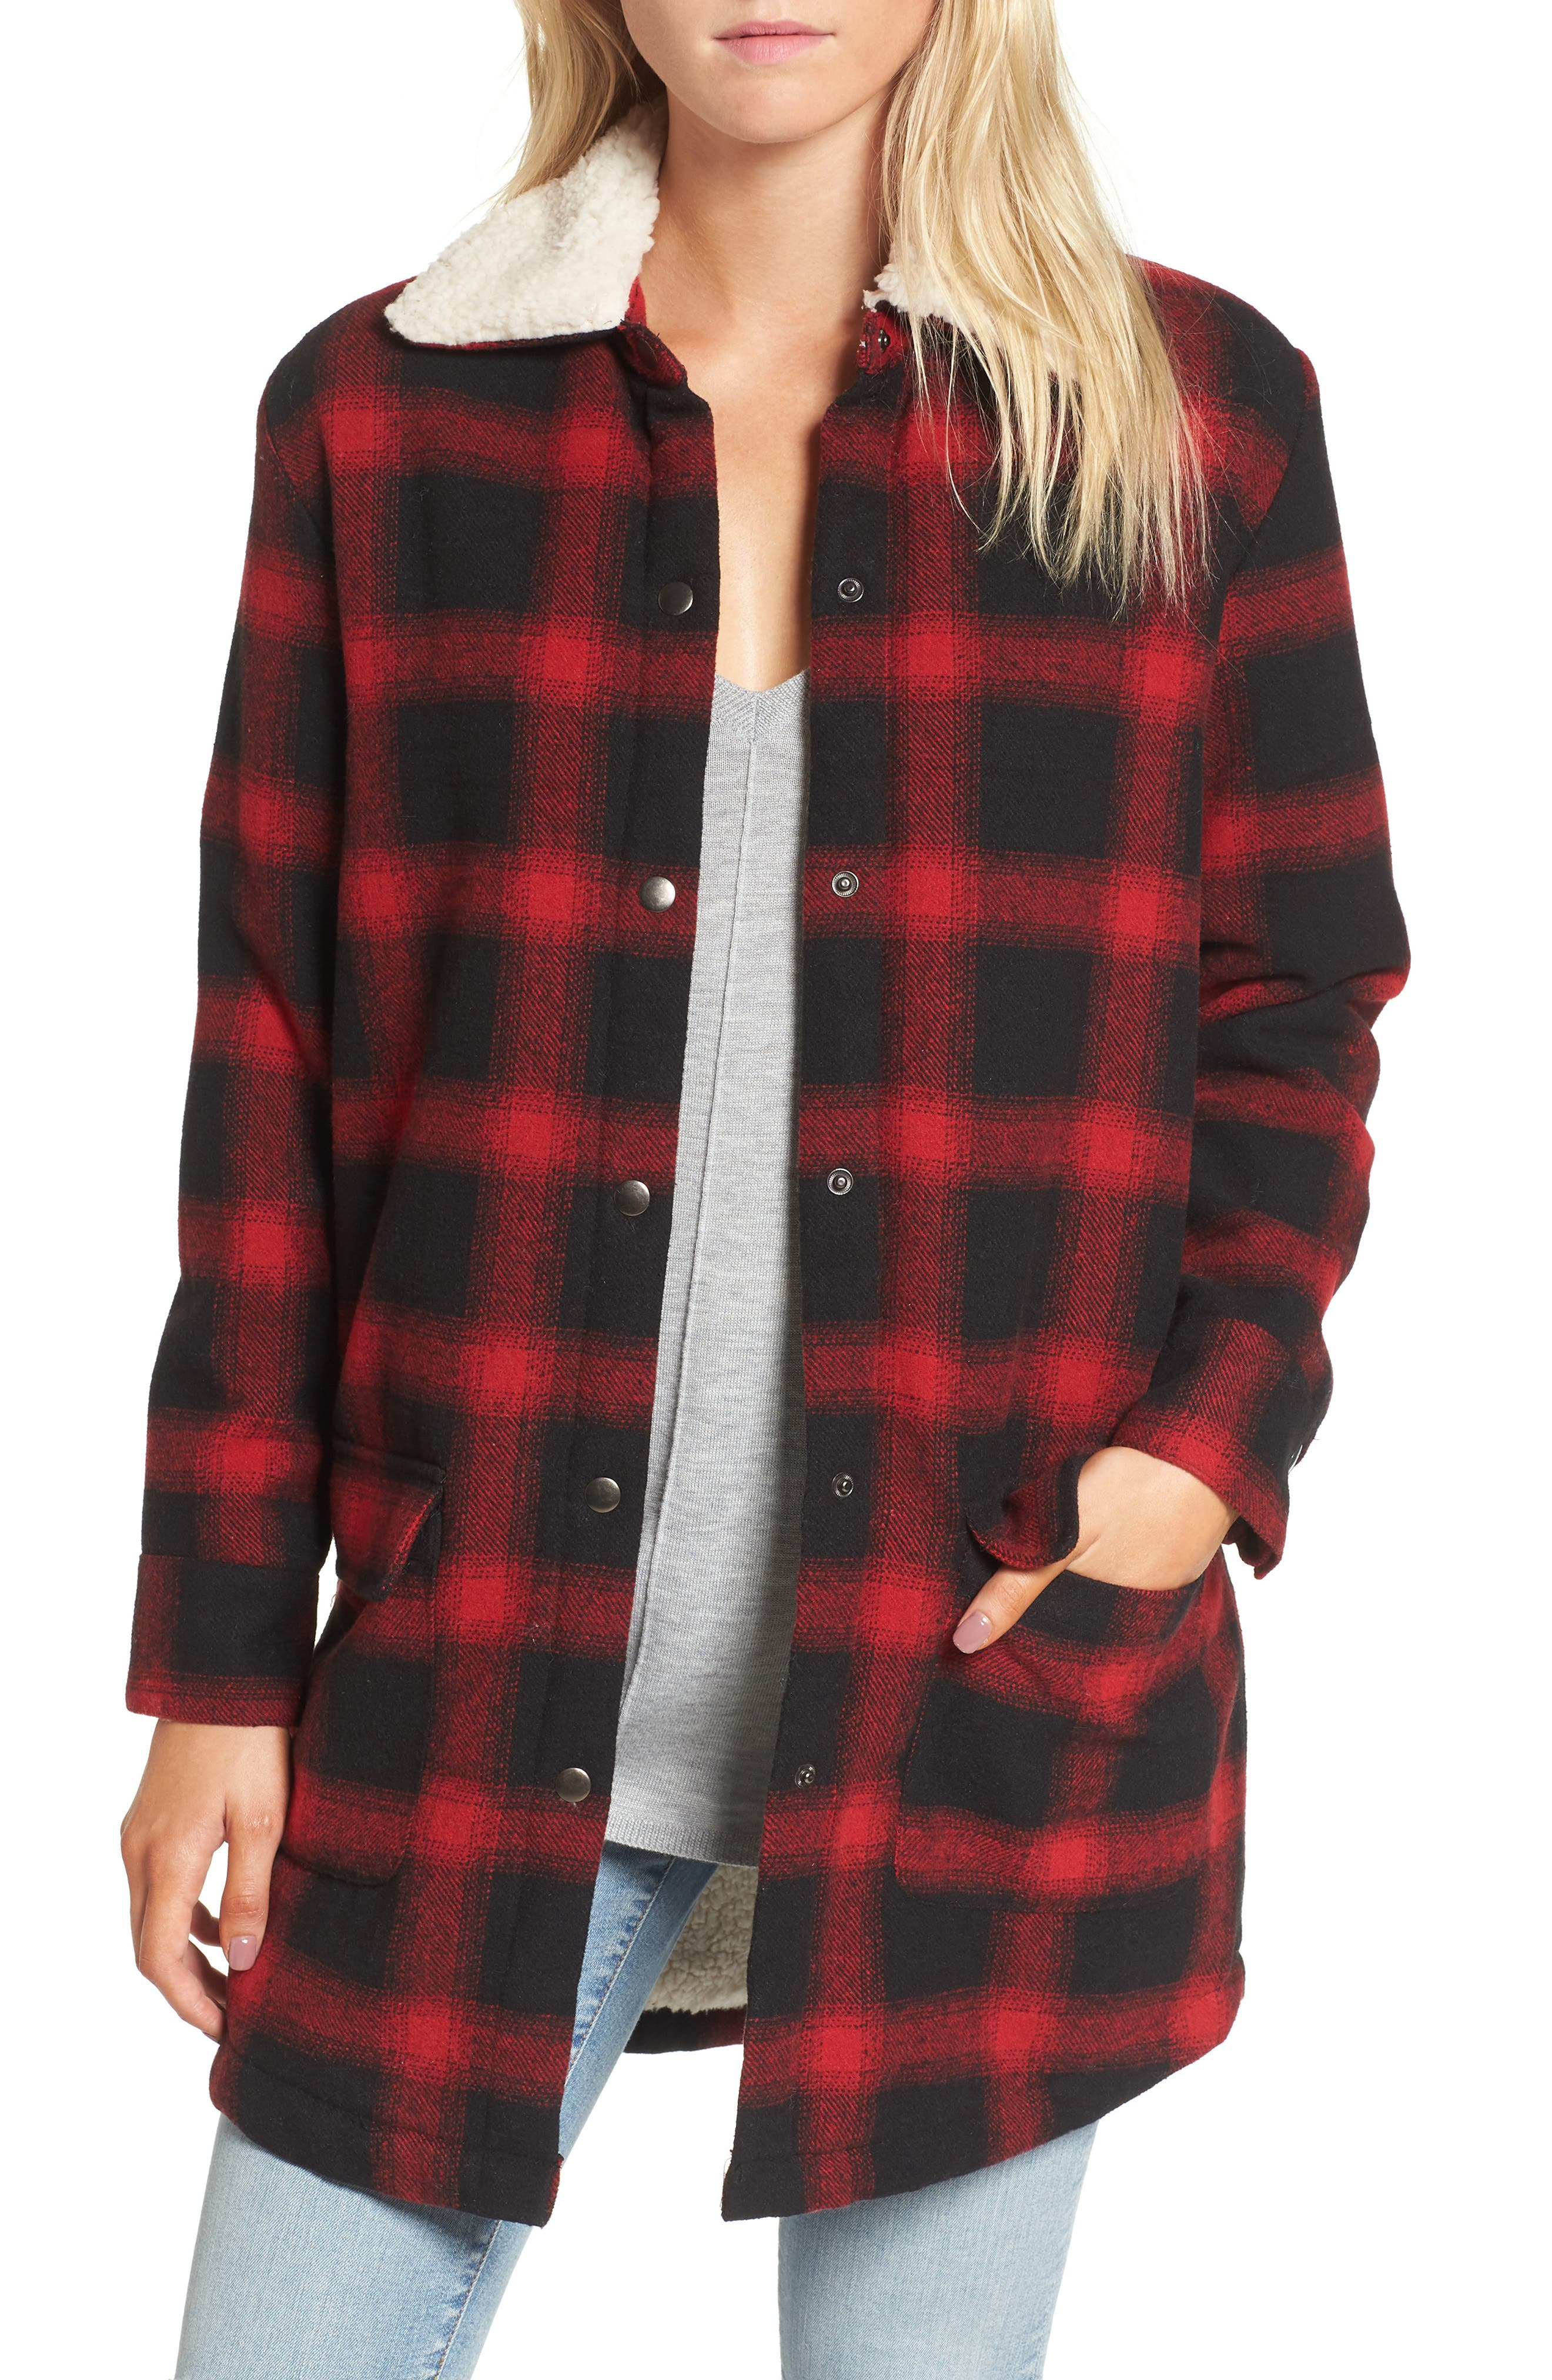 Bradley Fleece Lined Plaid Coat,                         Main,                         color, Cherry Red